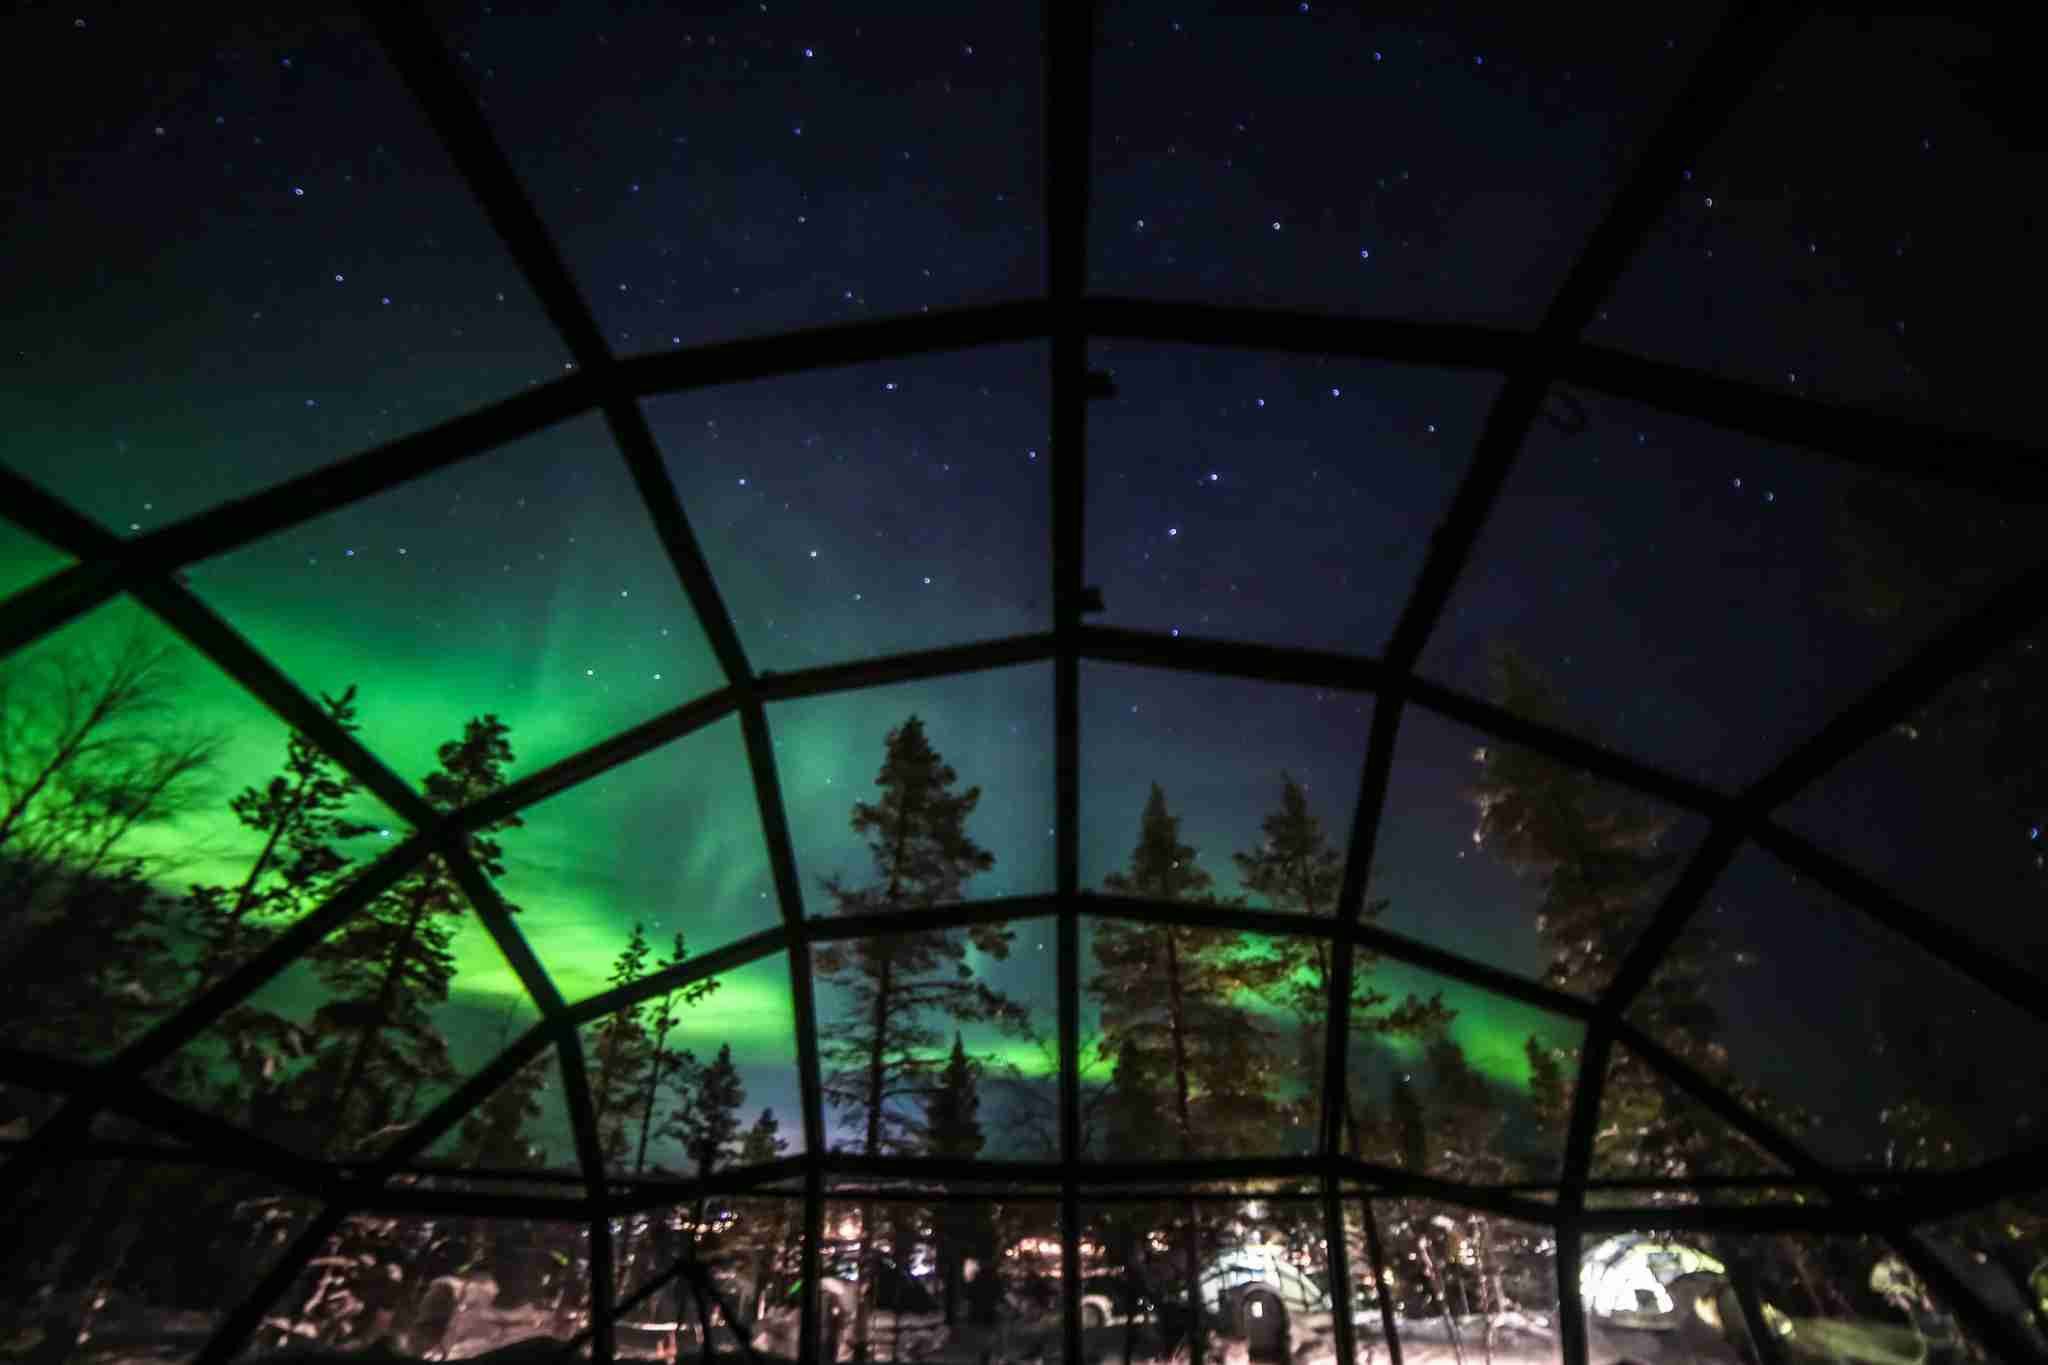 Helsinki, Finland - January 16, 2018: Aurora borealis, also known as Northern lights shining in the night sky seen from Glass Igloos, Kakslauttanen Arctic Resort West Village, Saariselkä, Lapland, Finland.